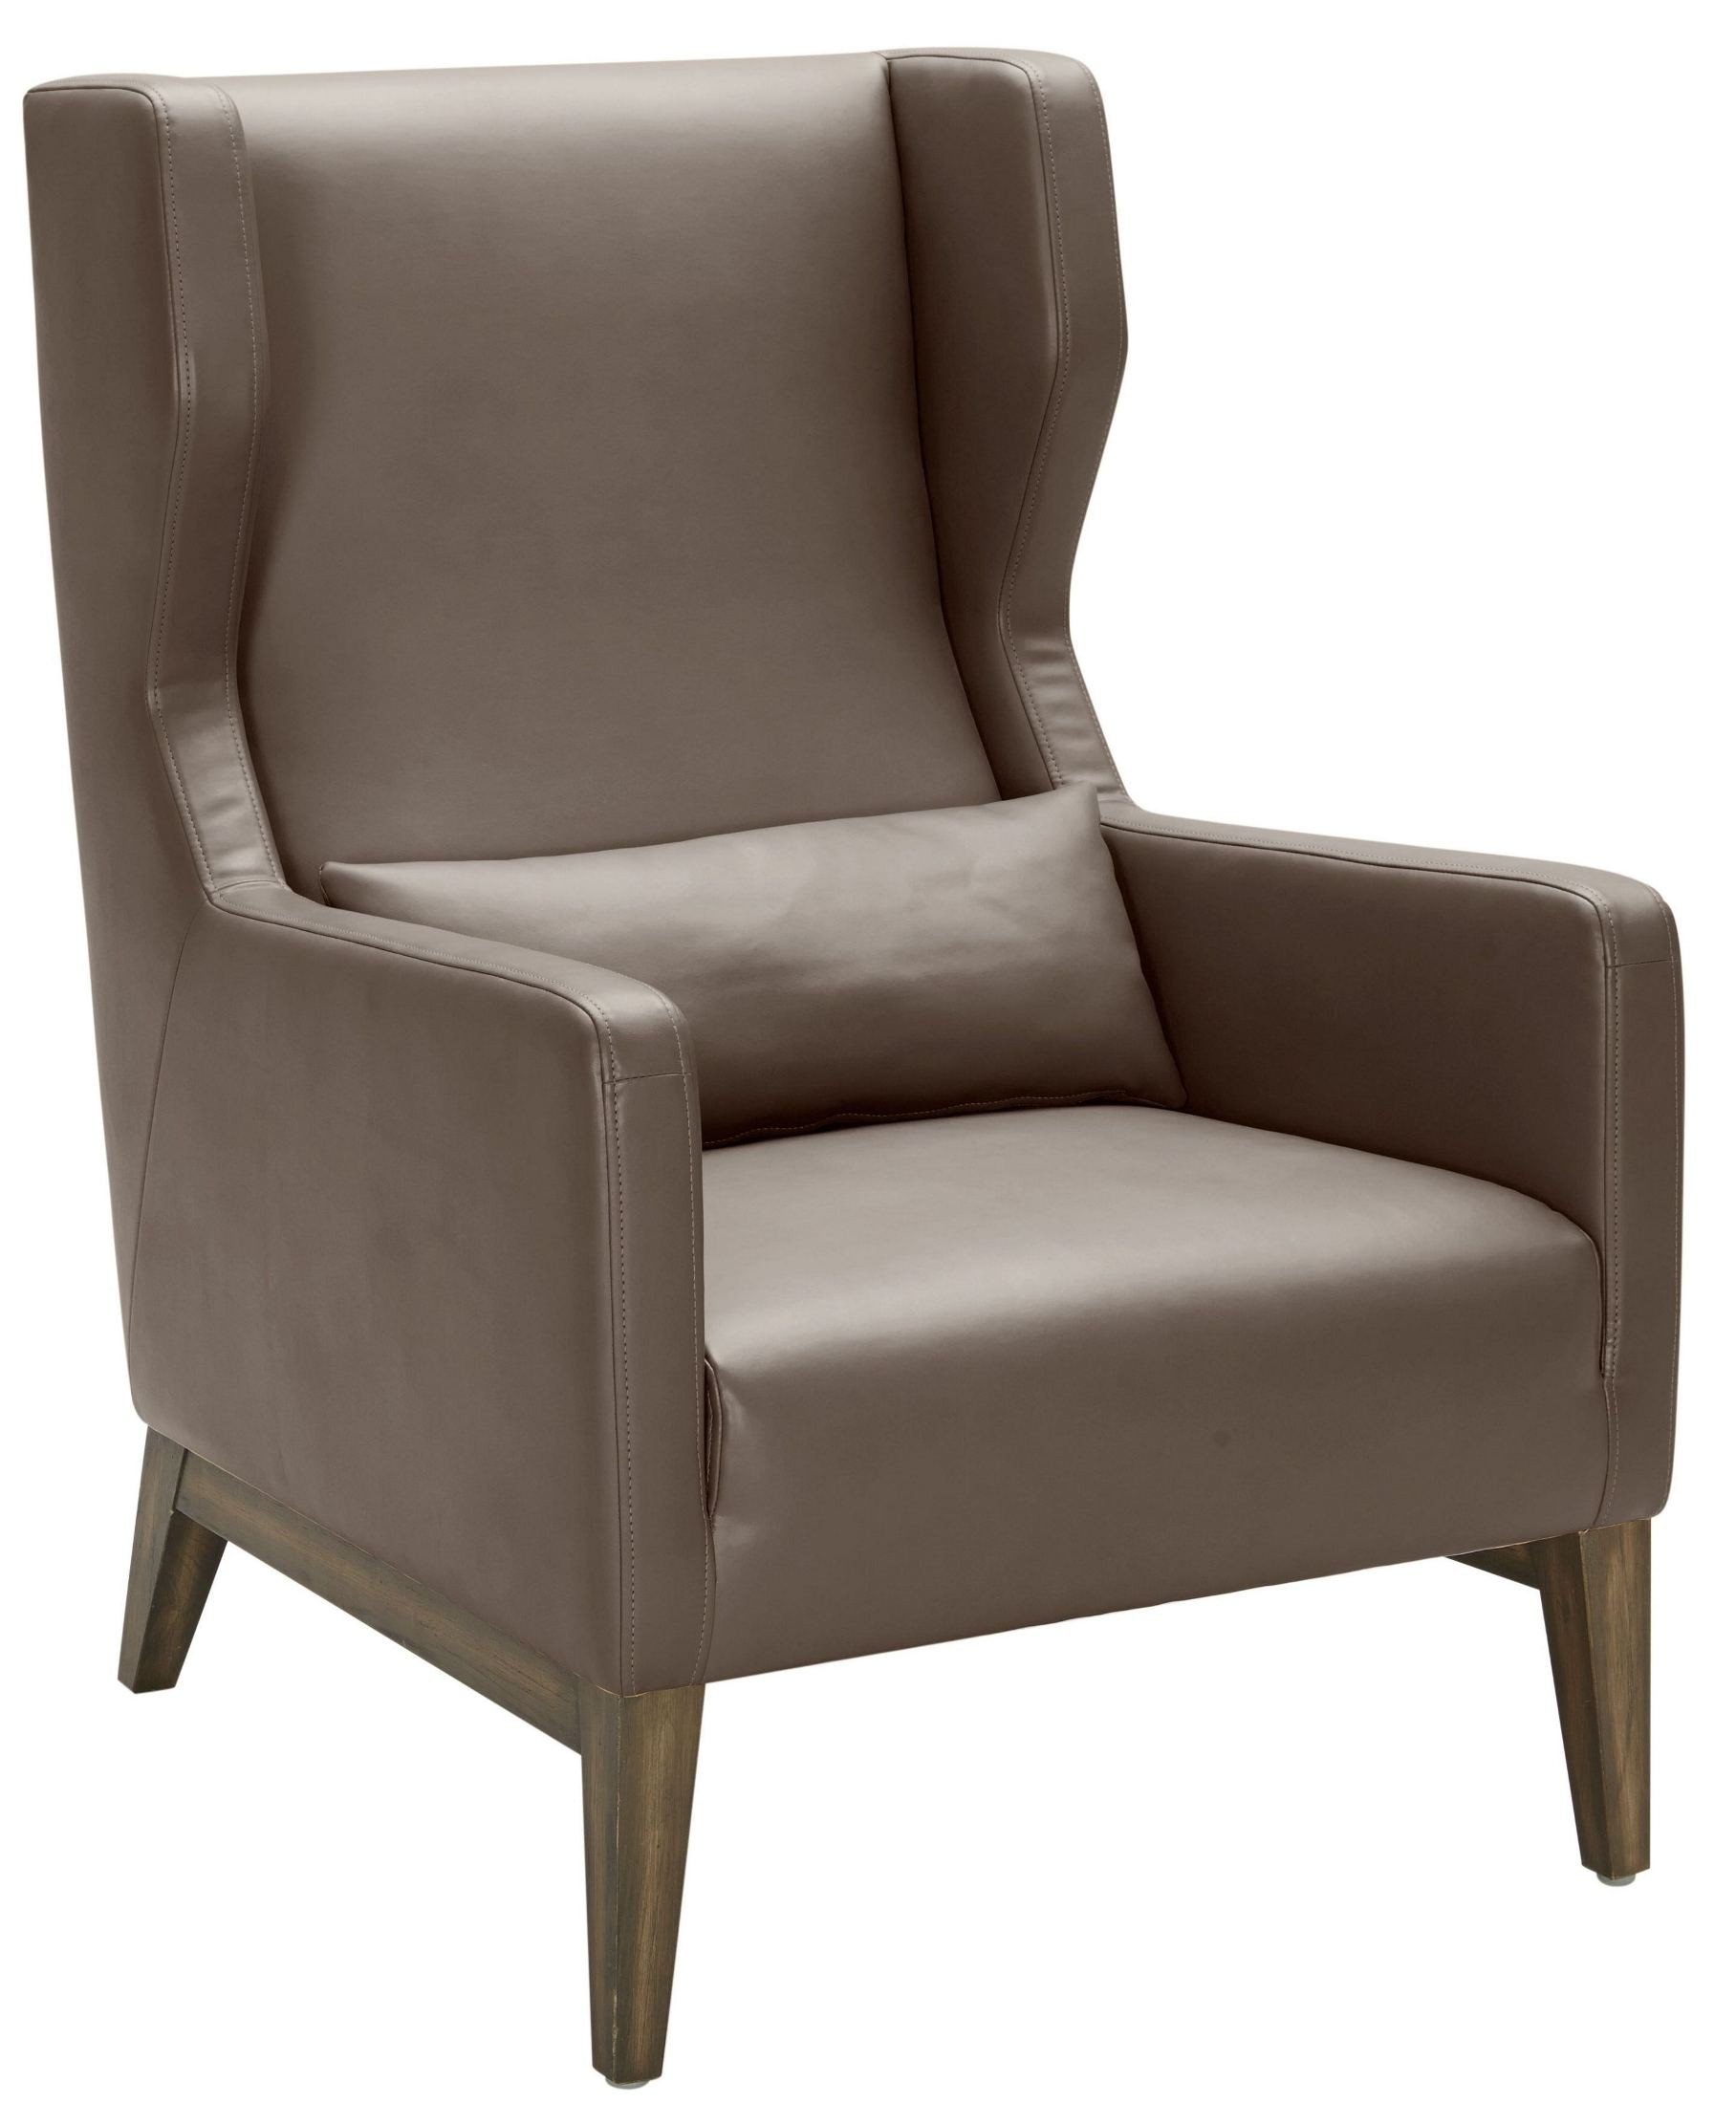 Messina Dove Grey Leather Armchair From Sunpan Coleman